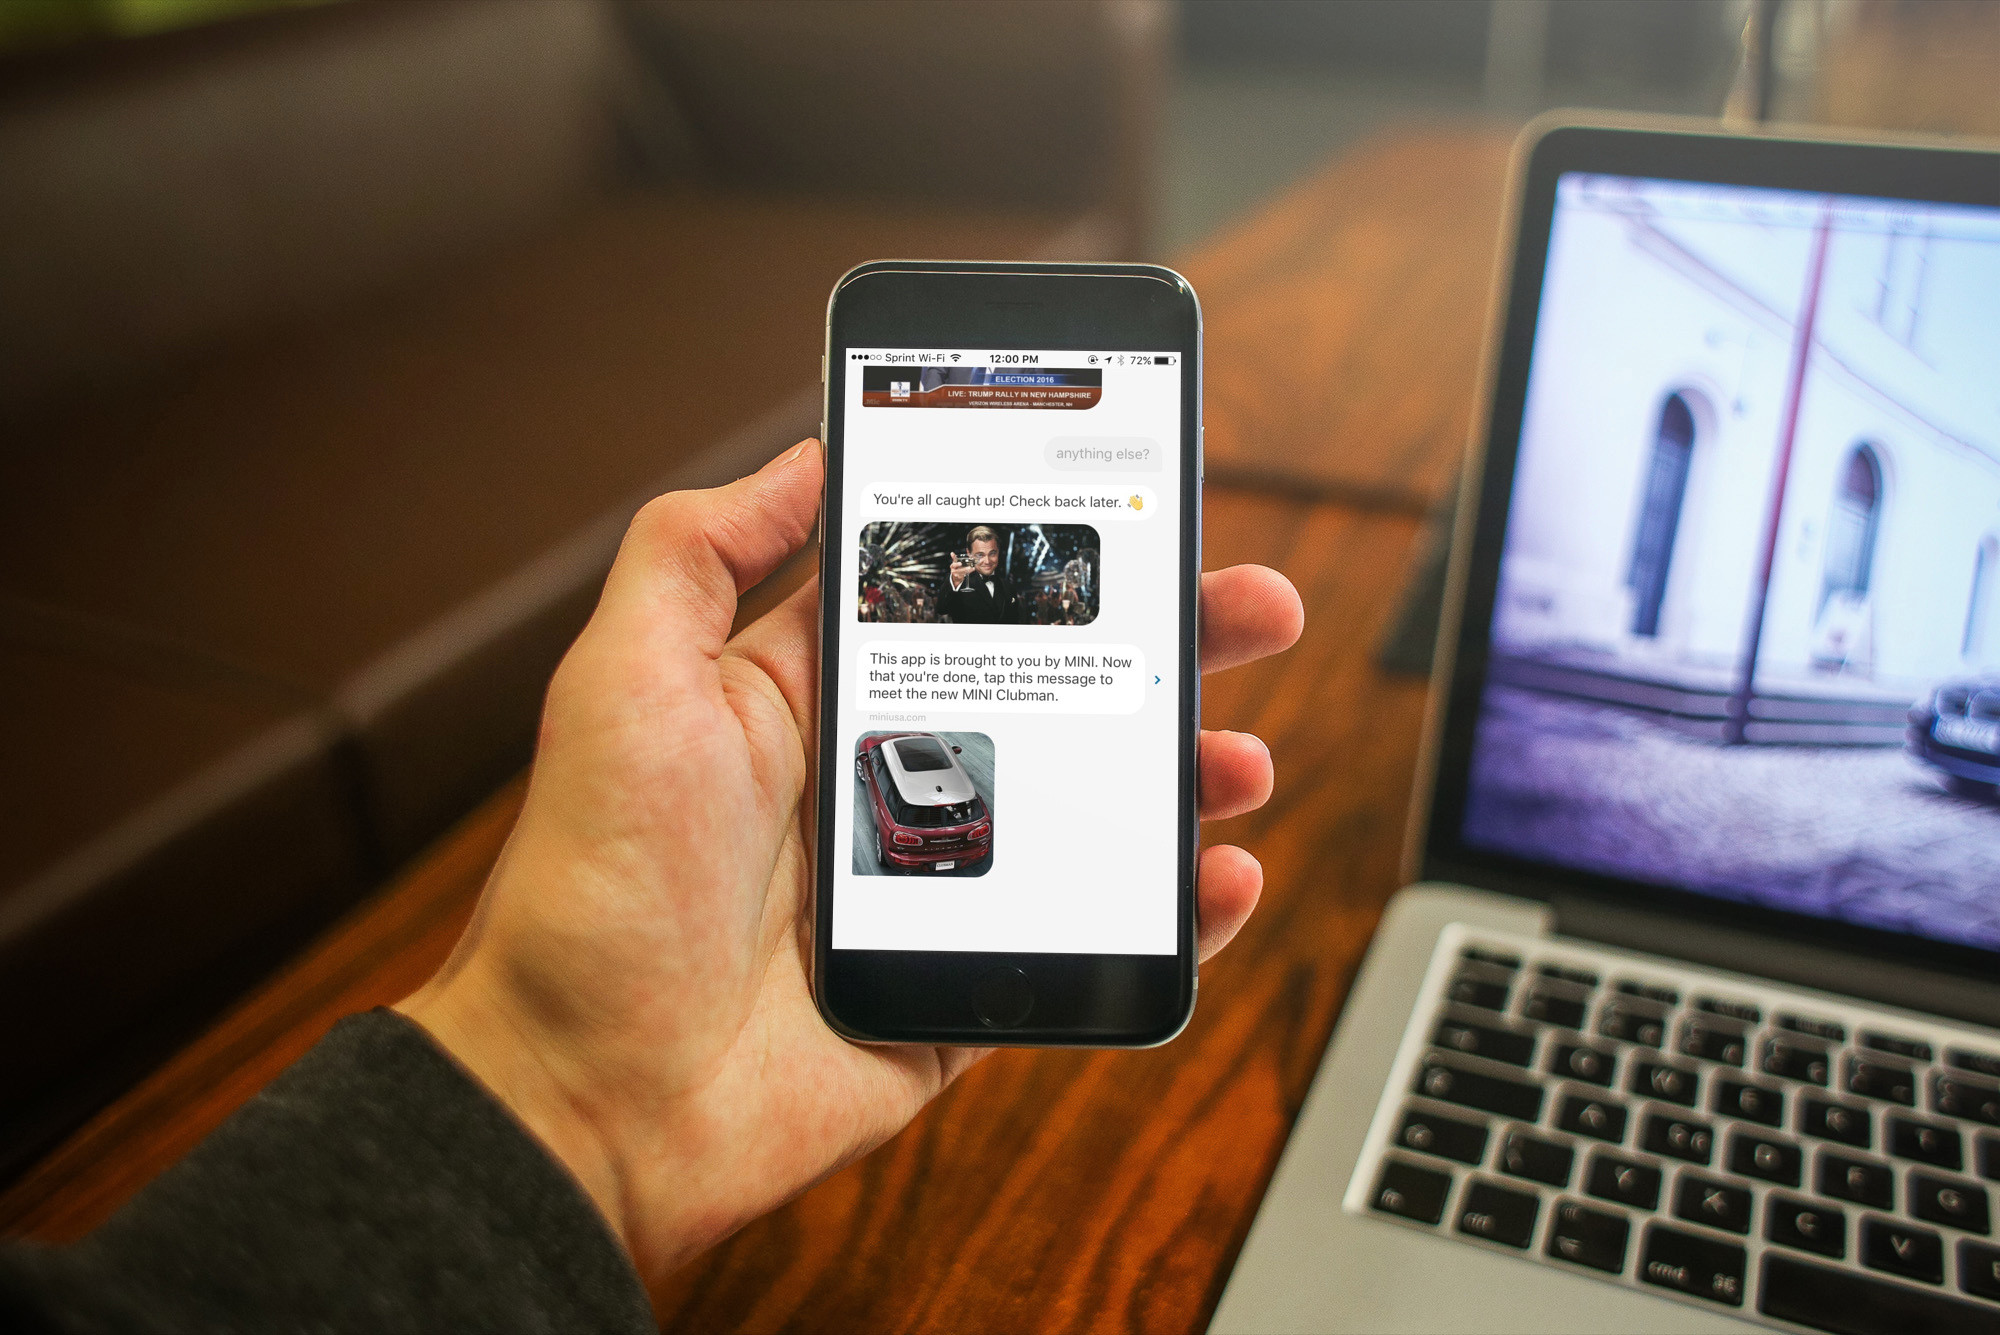 Read the news like you're reading text messages with Quartz